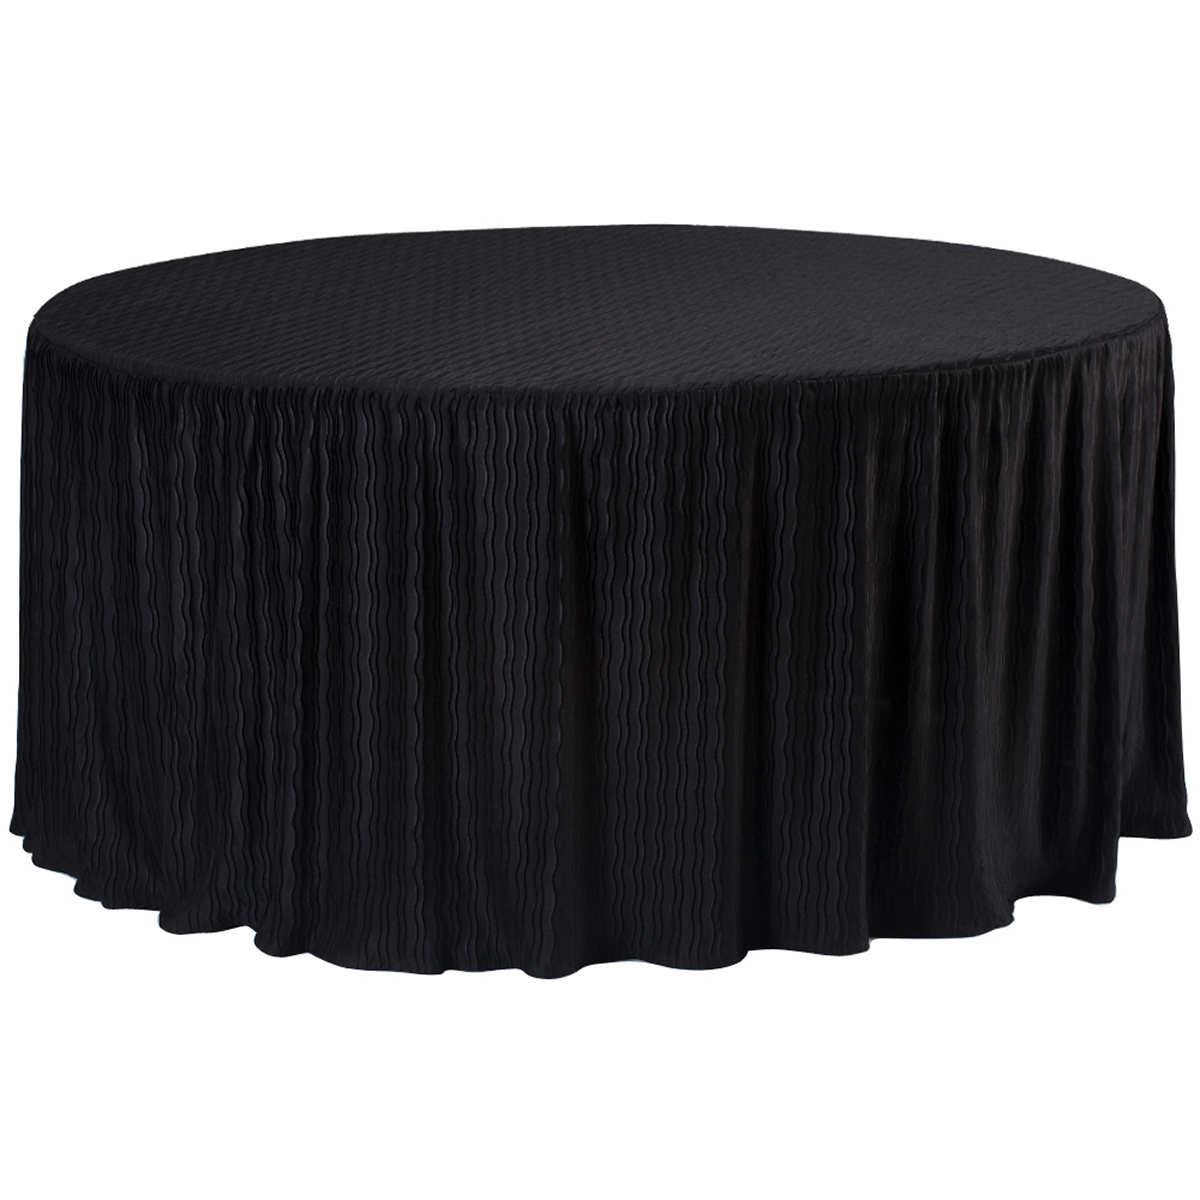 Table Cloth For Round Table The Folding Table Cloth For 60 Round Tables